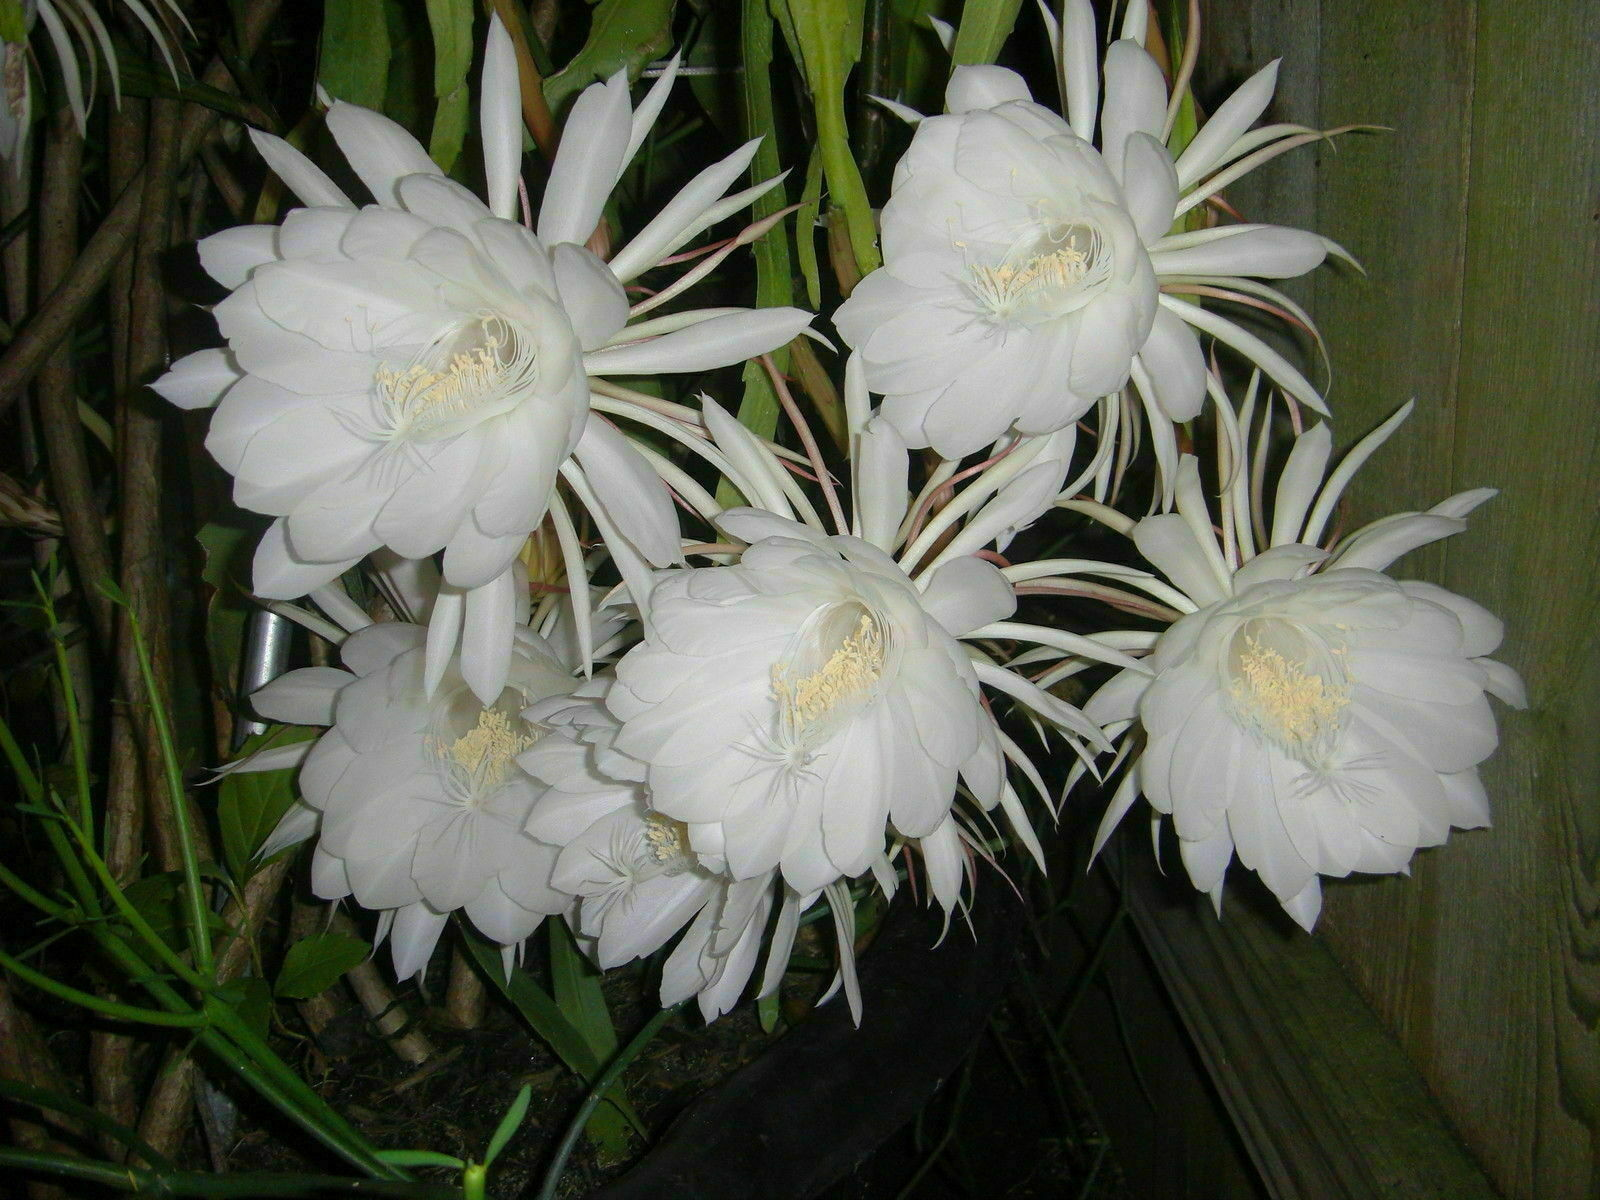 3 Plants Night Blooming Cereus Epiphyllum Oxypetalum Cactus